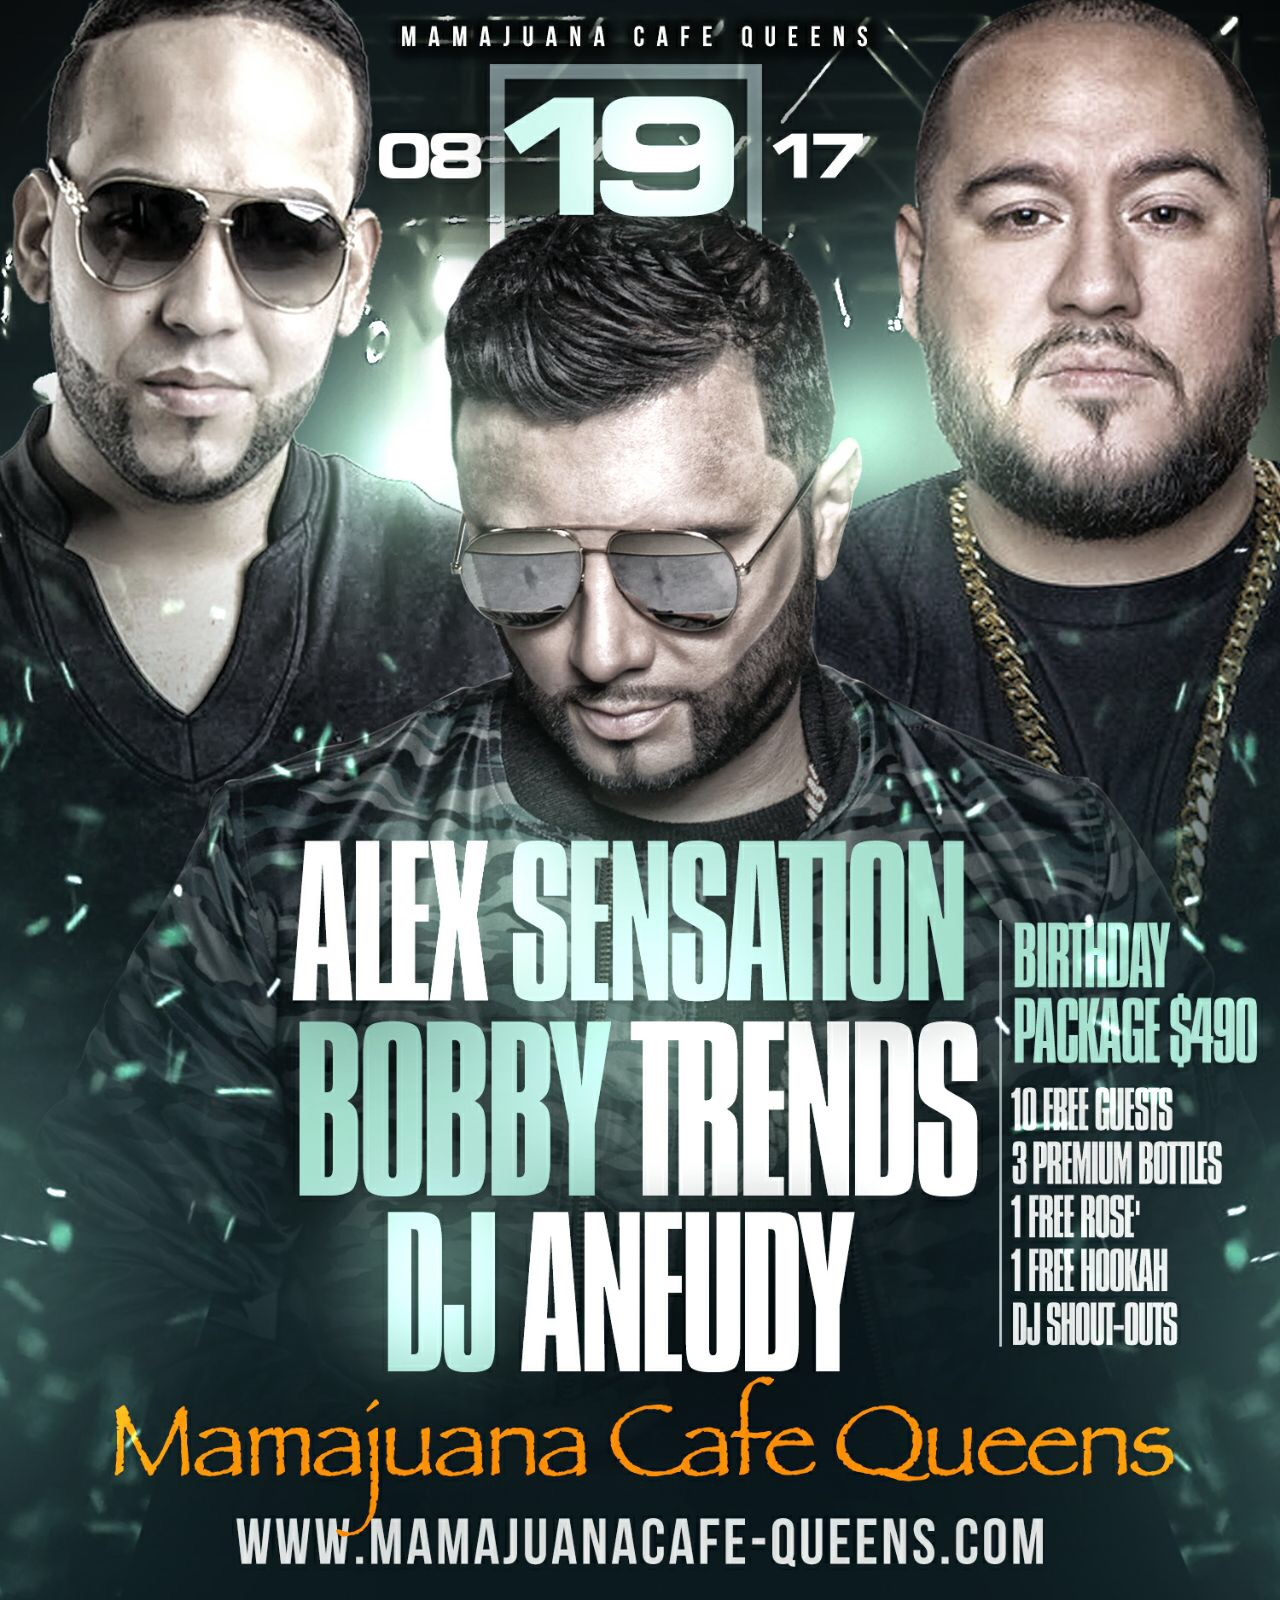 Alex Sensation Is Back! Mamajuana Cafe Queens